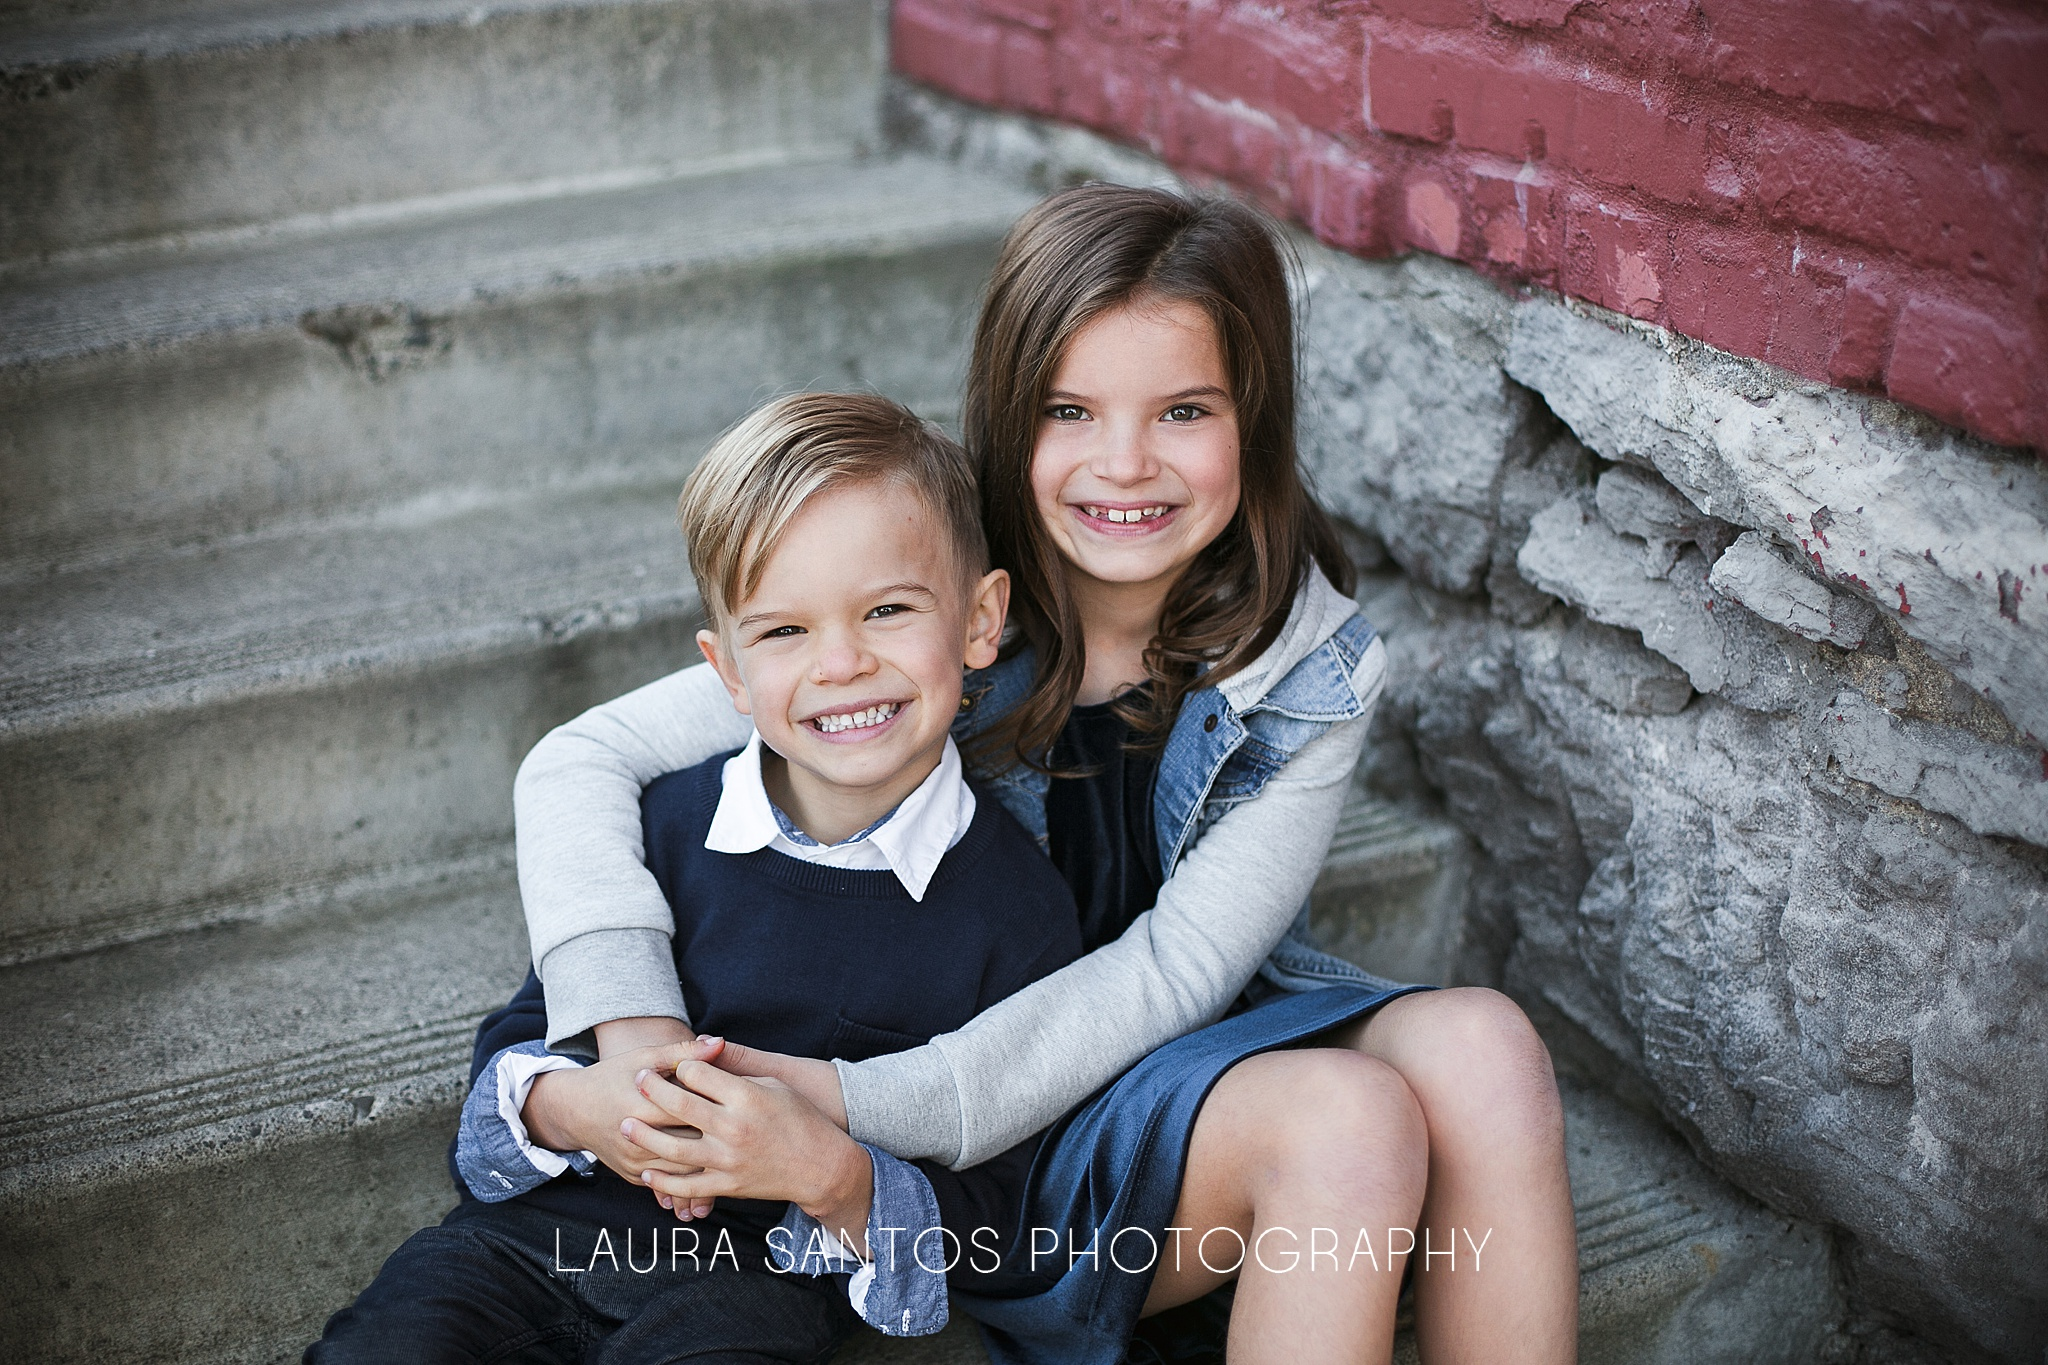 Laura Santos Photography Portland Oregon Family Photographer_0627.jpg